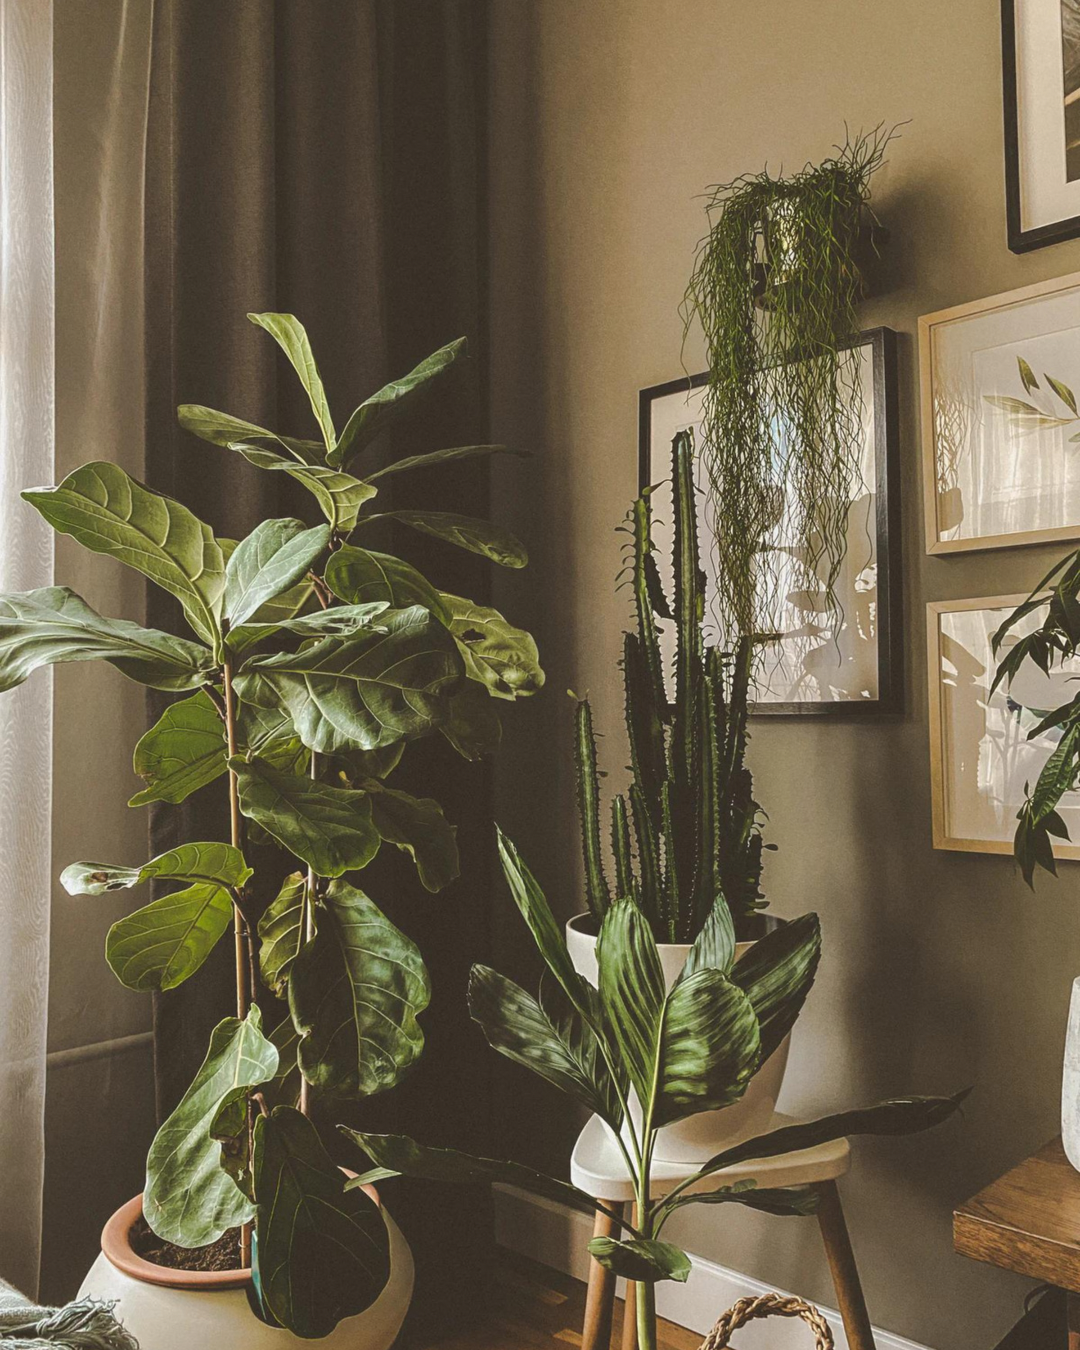 A cosy room dotted with different house plants